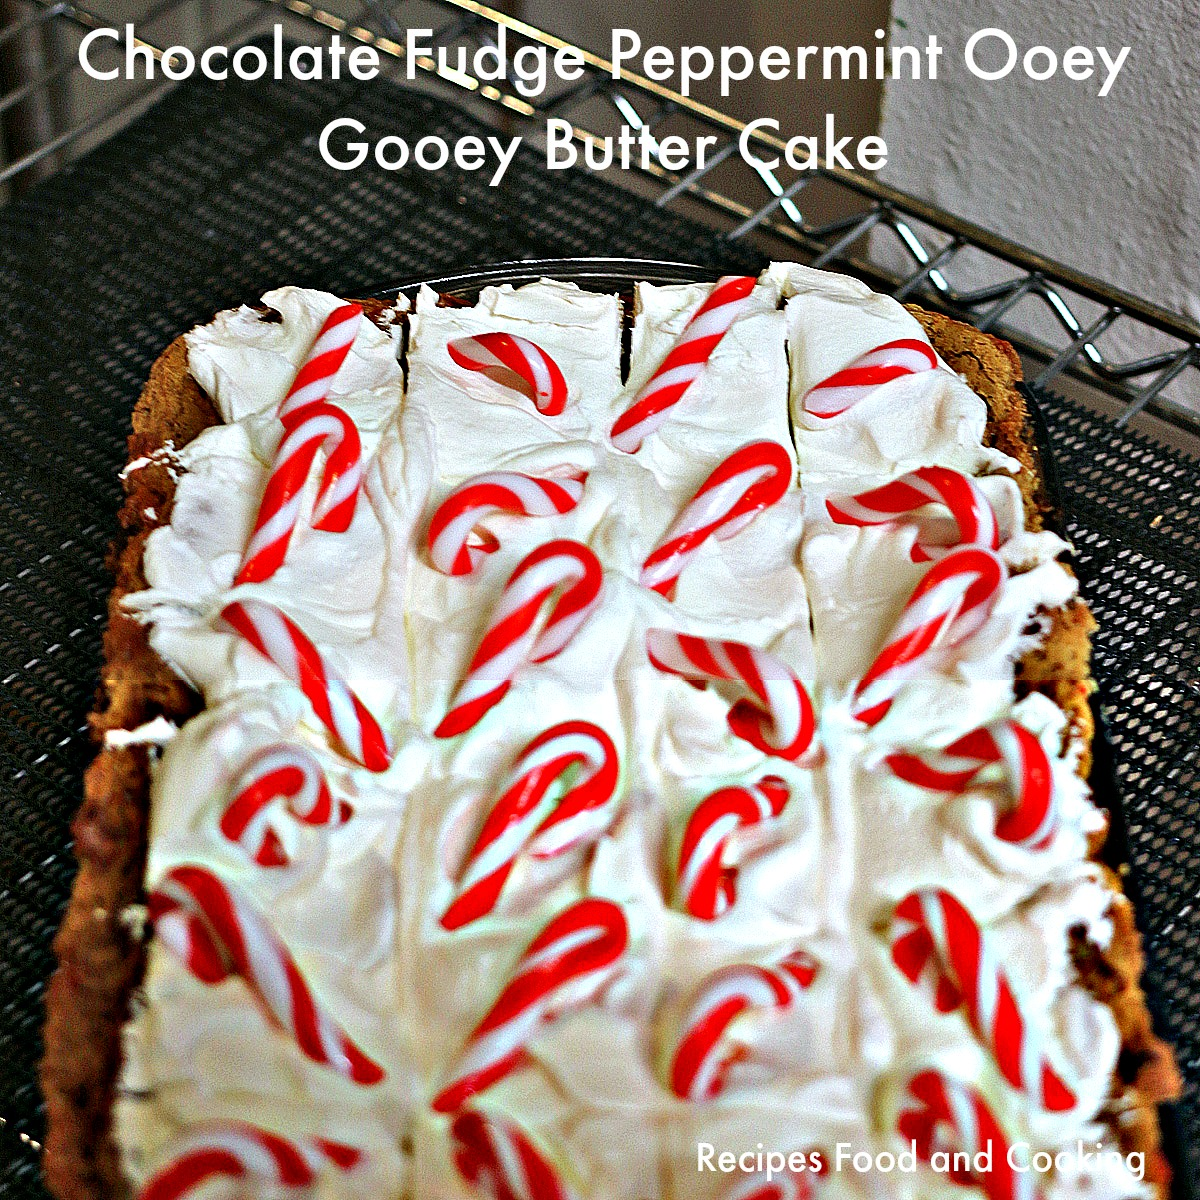 Chocolate Fudge Peppermint Ooey Gooey Butter Cake